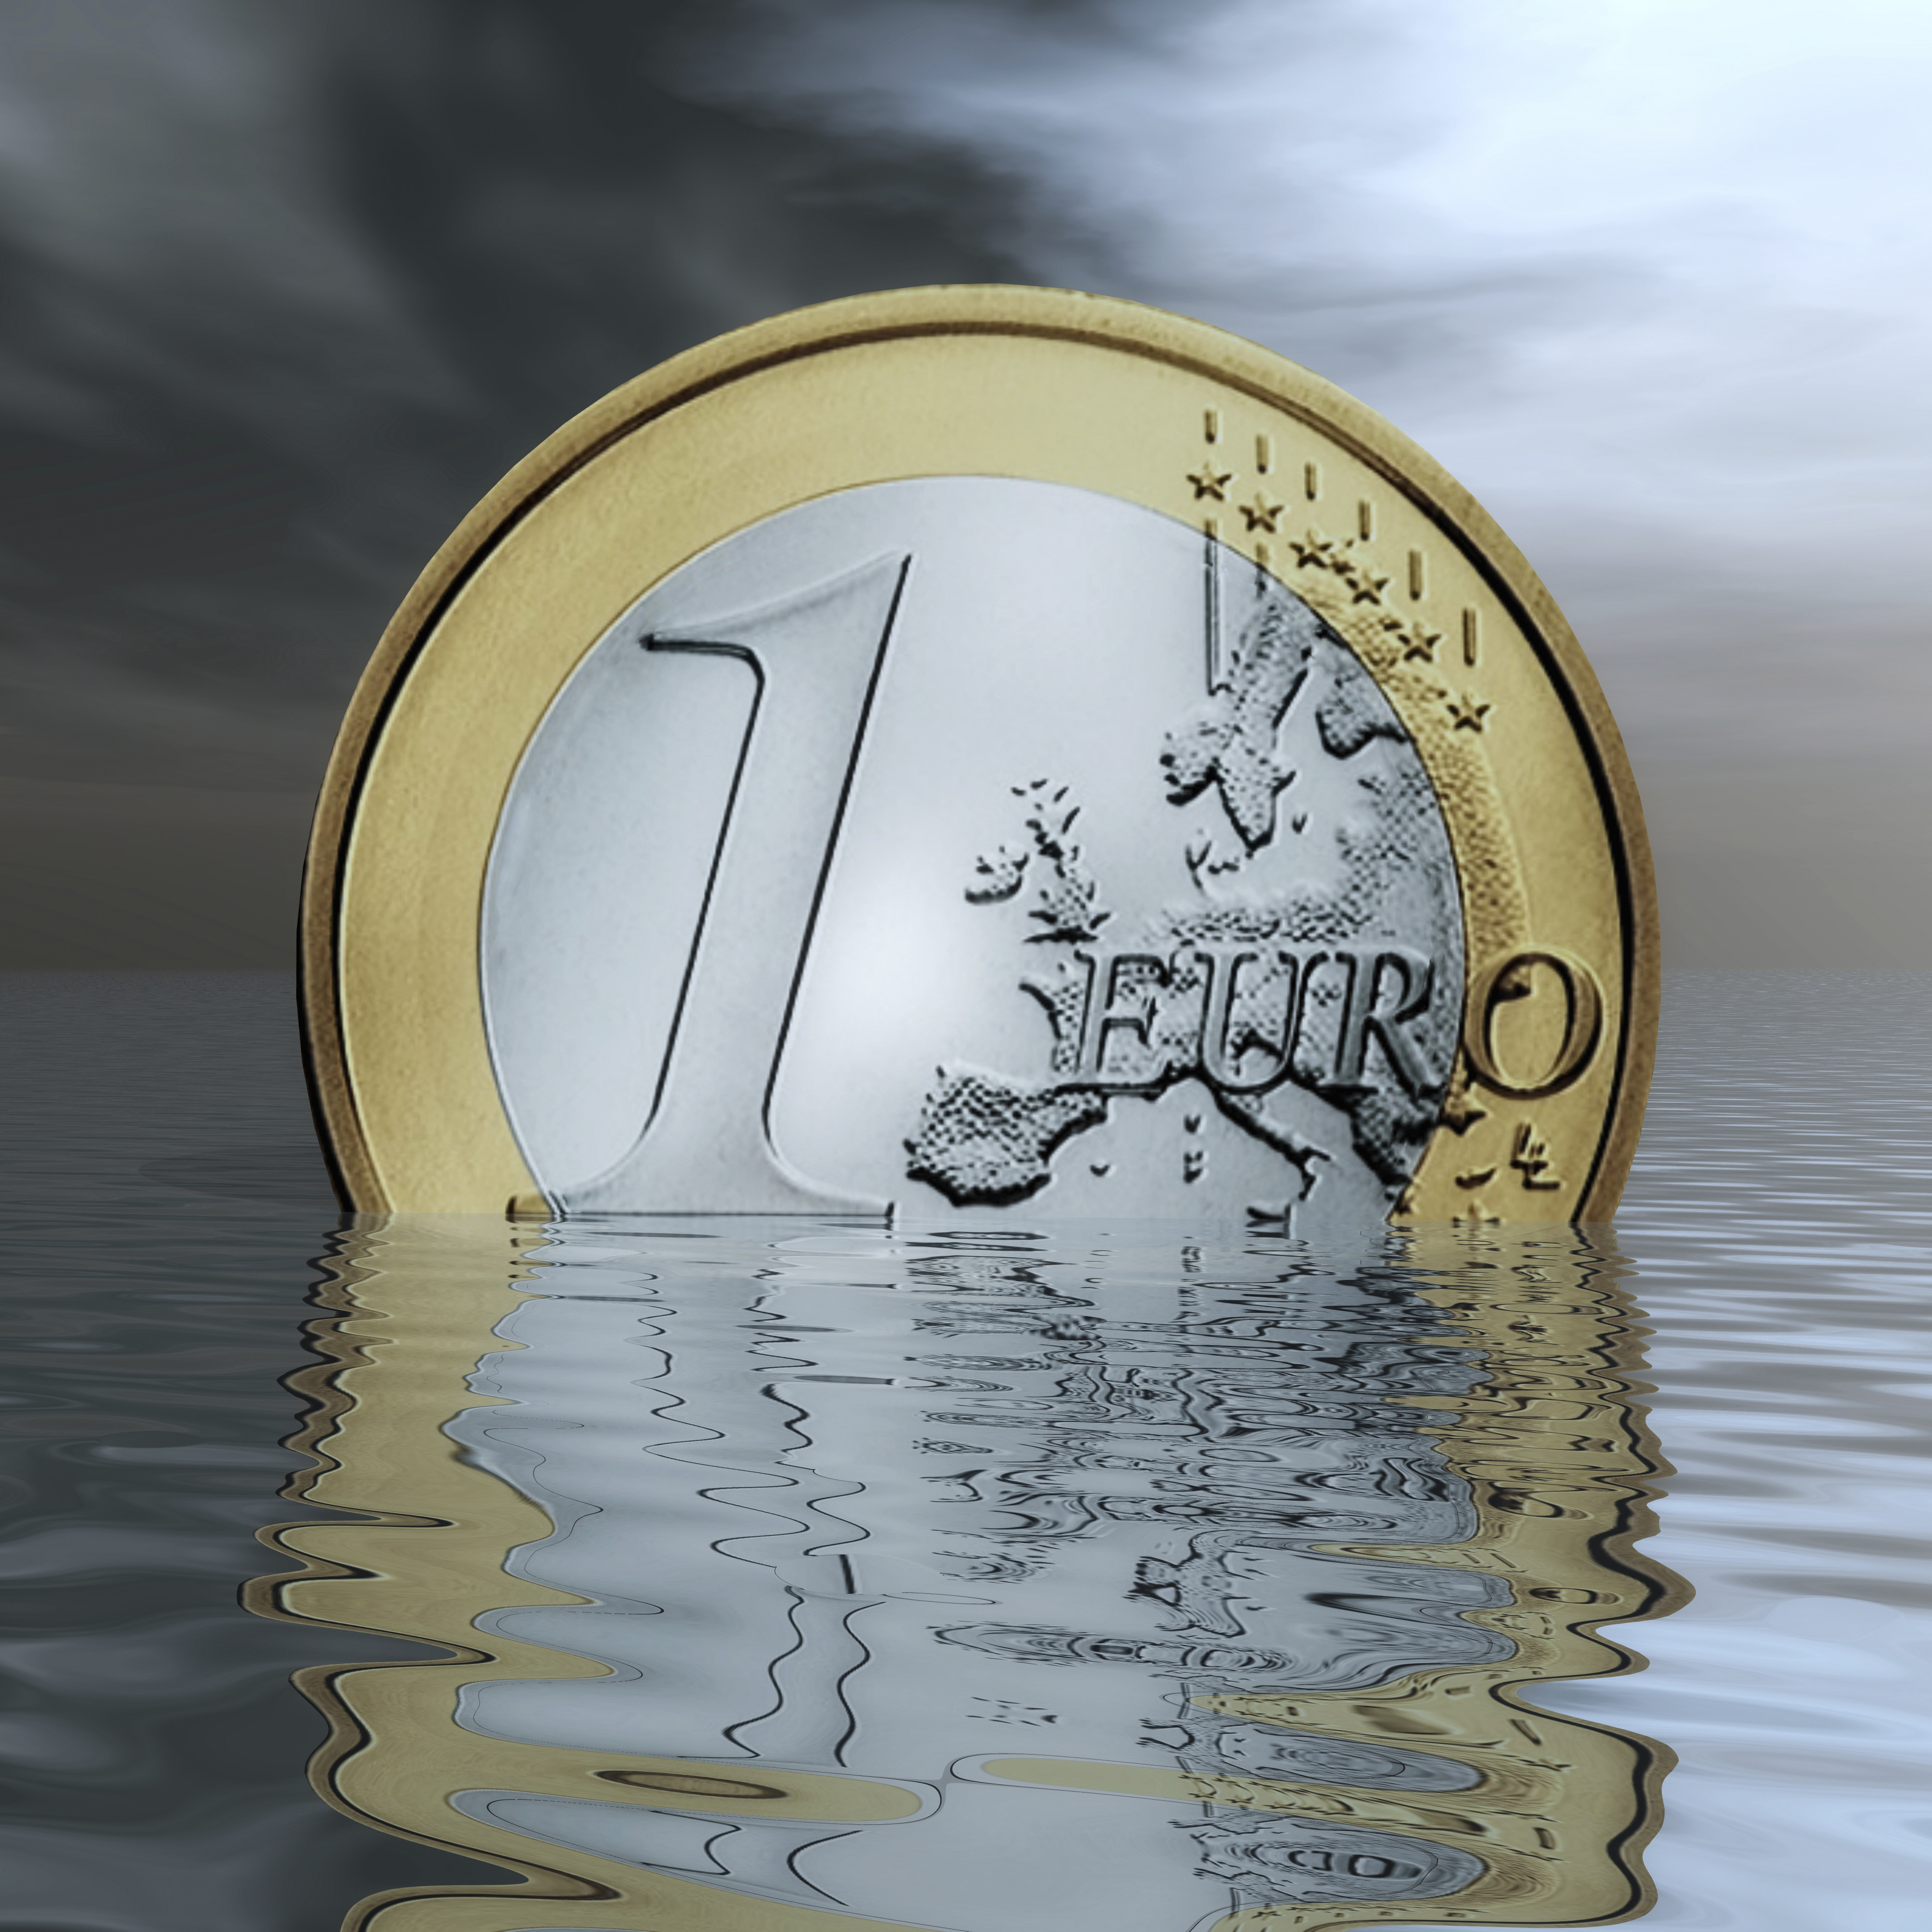 euro crisis Political scientist bastiaan van apeldoorn argues that the eurocrisis expresses  the failure of a neoliberal european project driven by a.